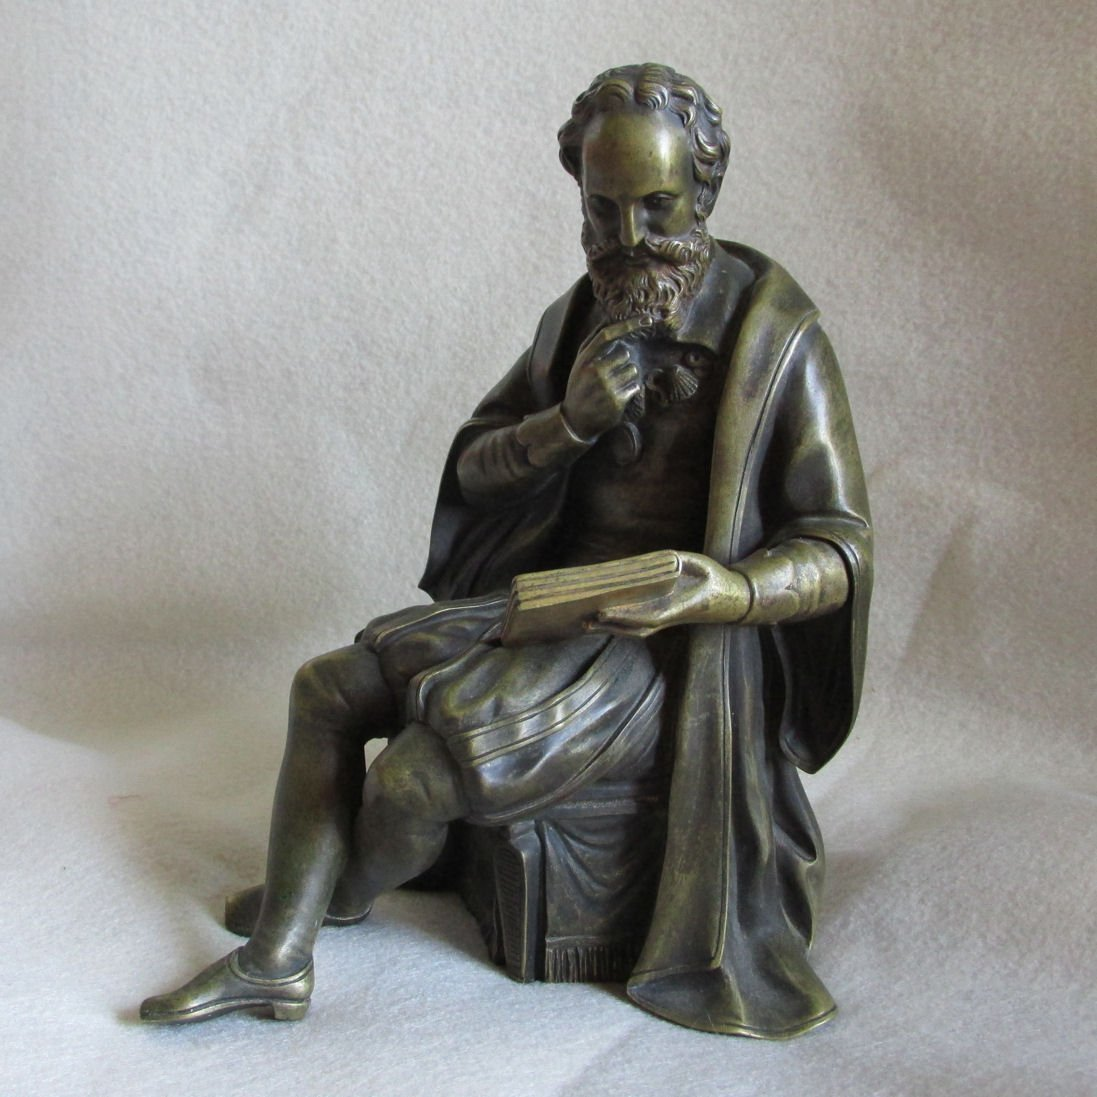 French Bronze Sculpture of Contemplative Gentleman